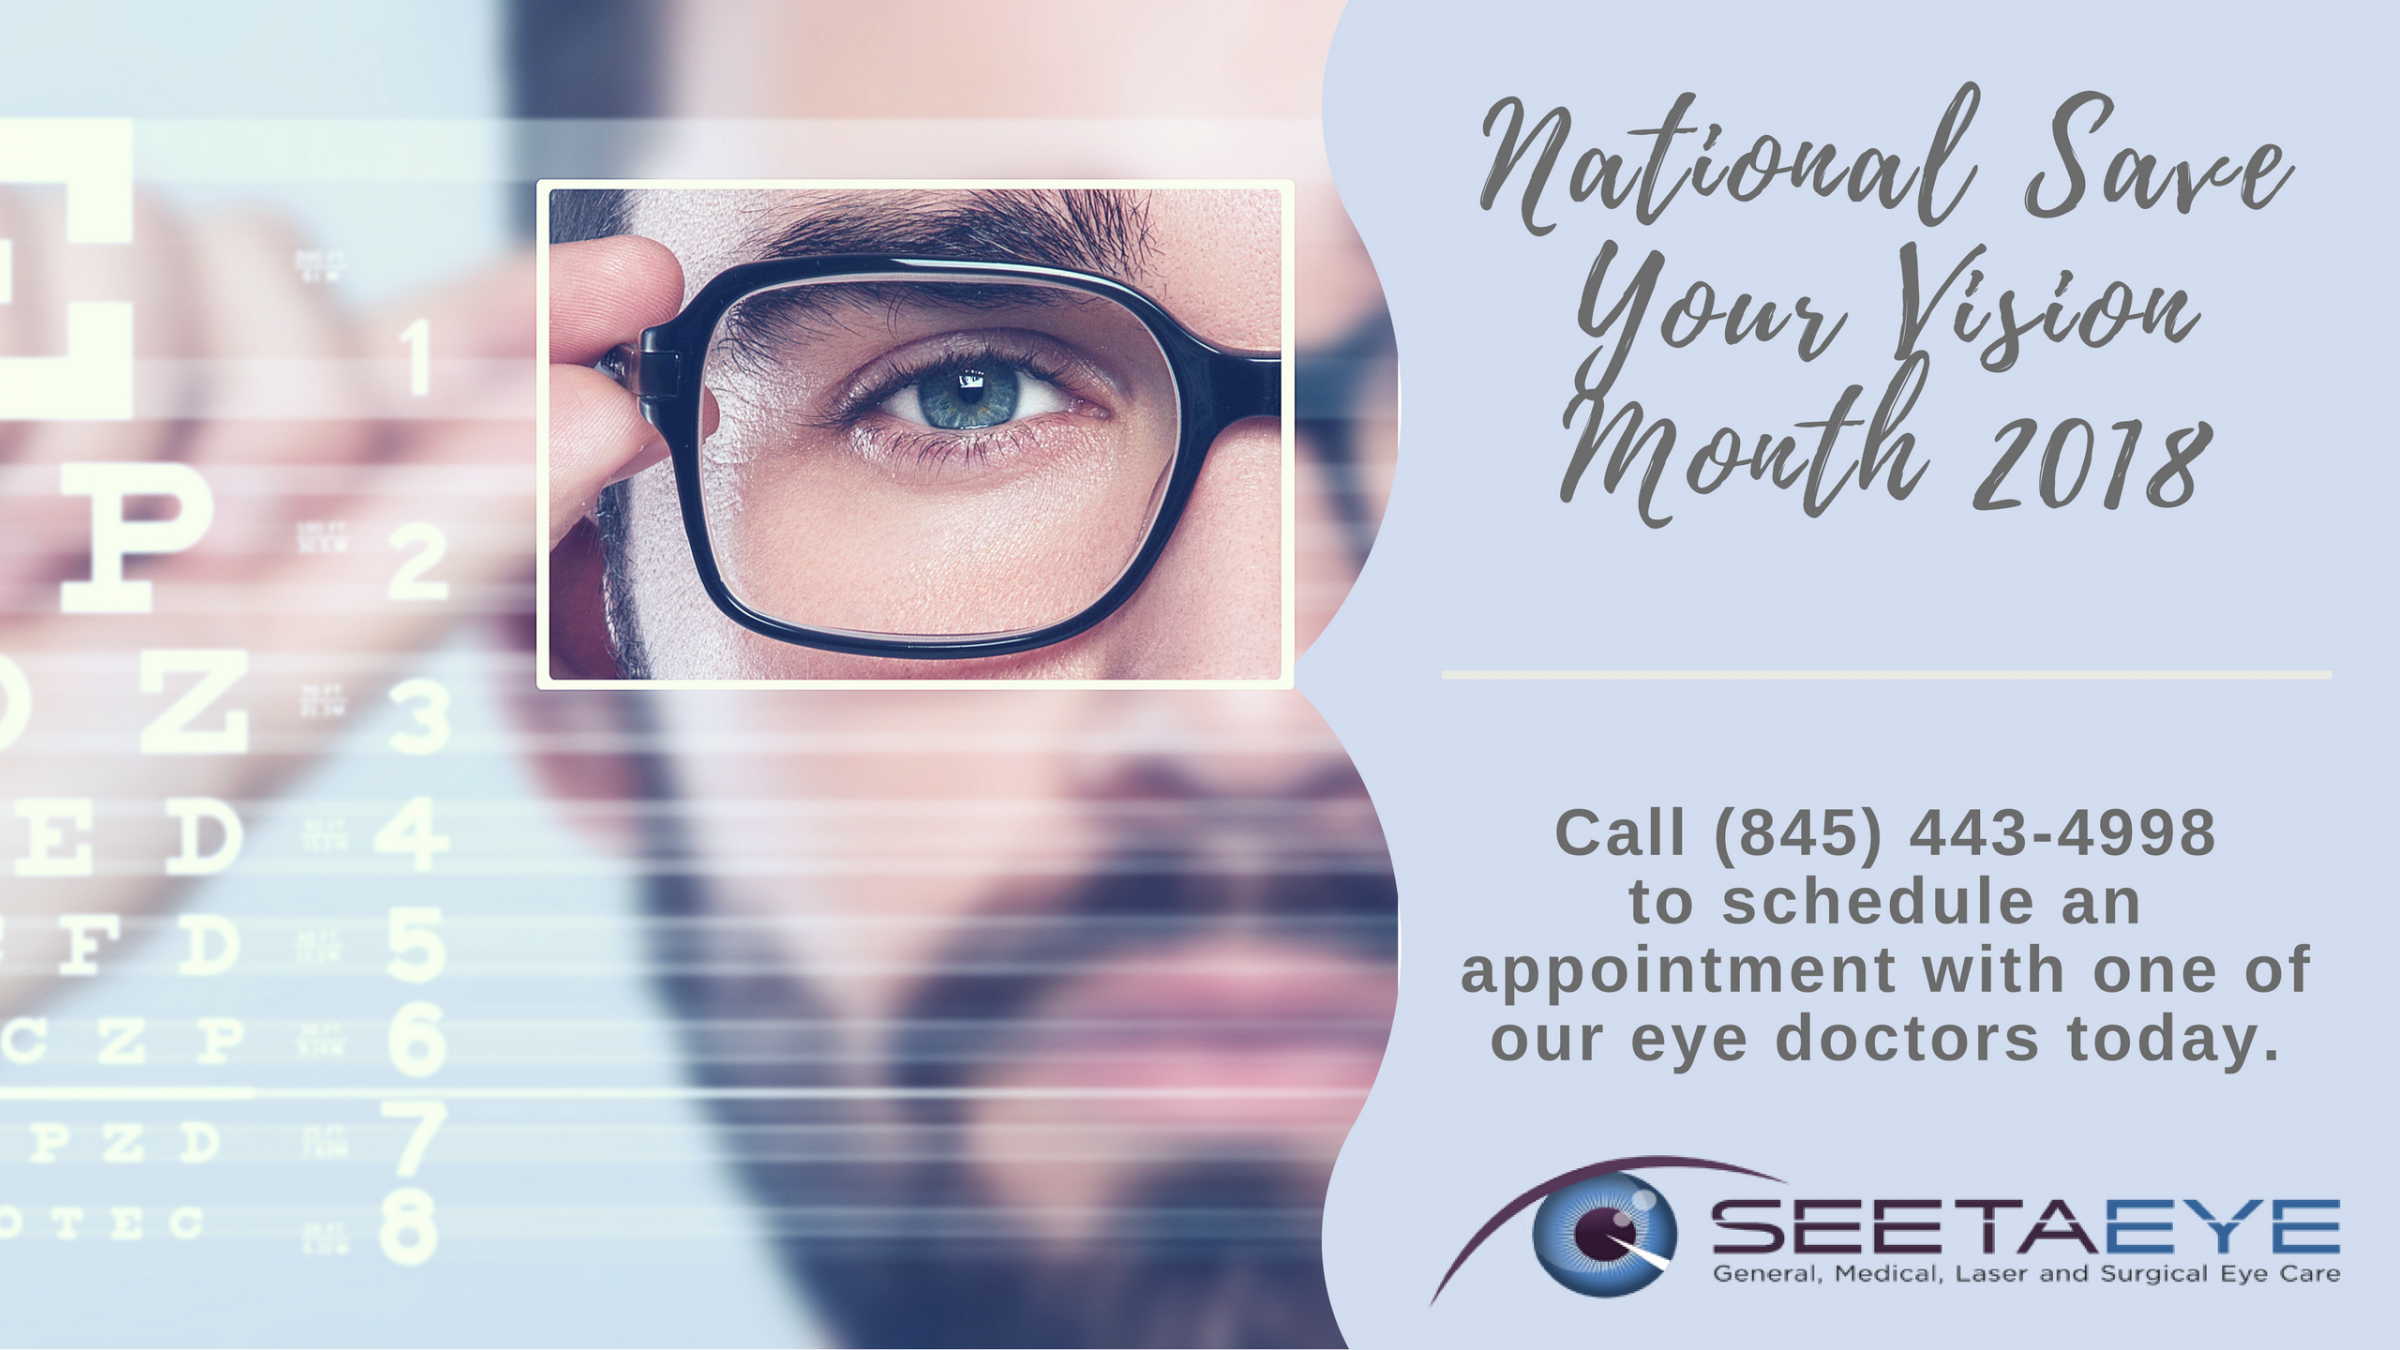 National Save Your Vision Month | Fishkill, NY